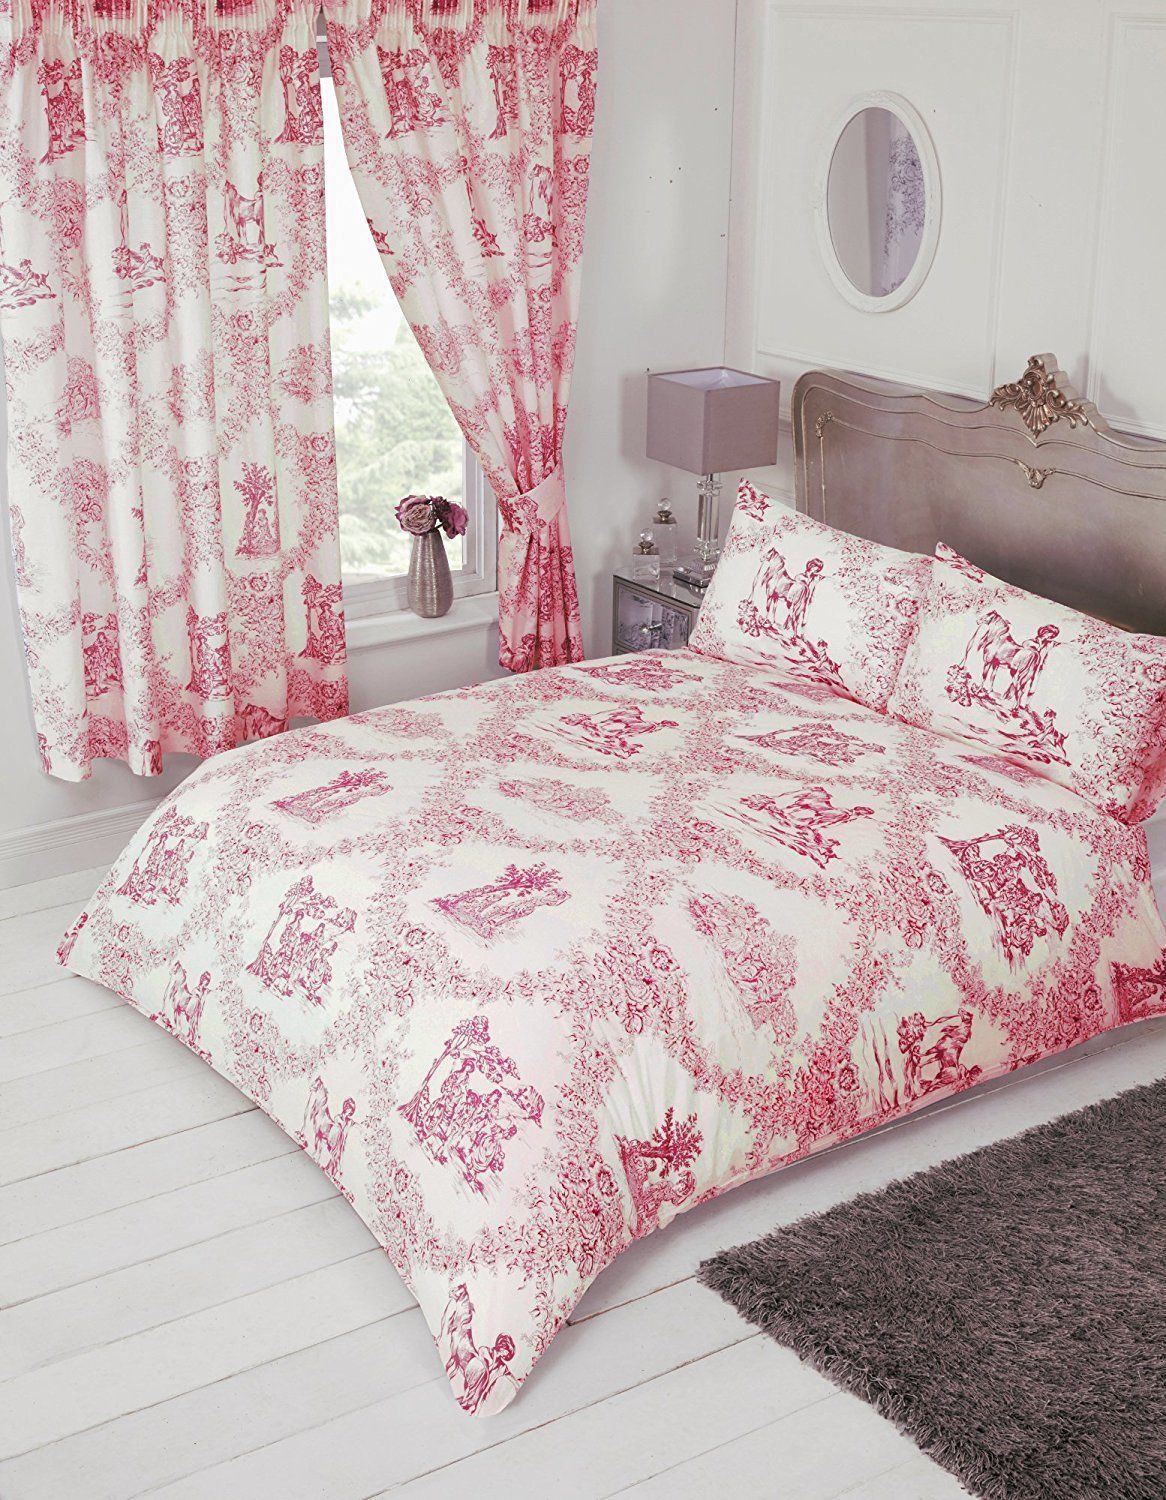 French Country Design Toile De Jouy Bedding Duvet Quilt Cover Set